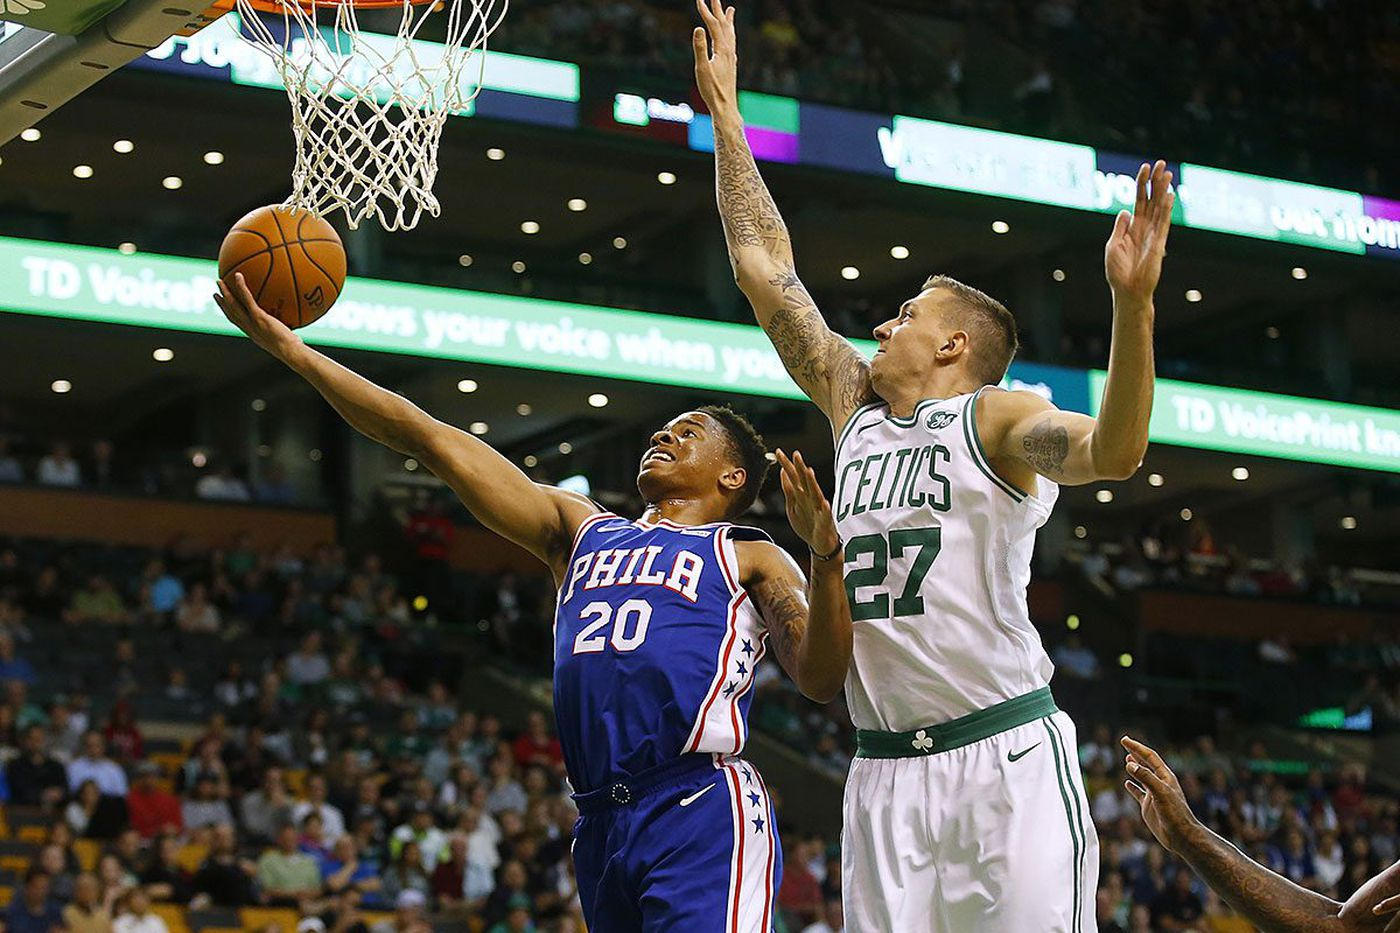 Depleted Celtics face new-look Sixers